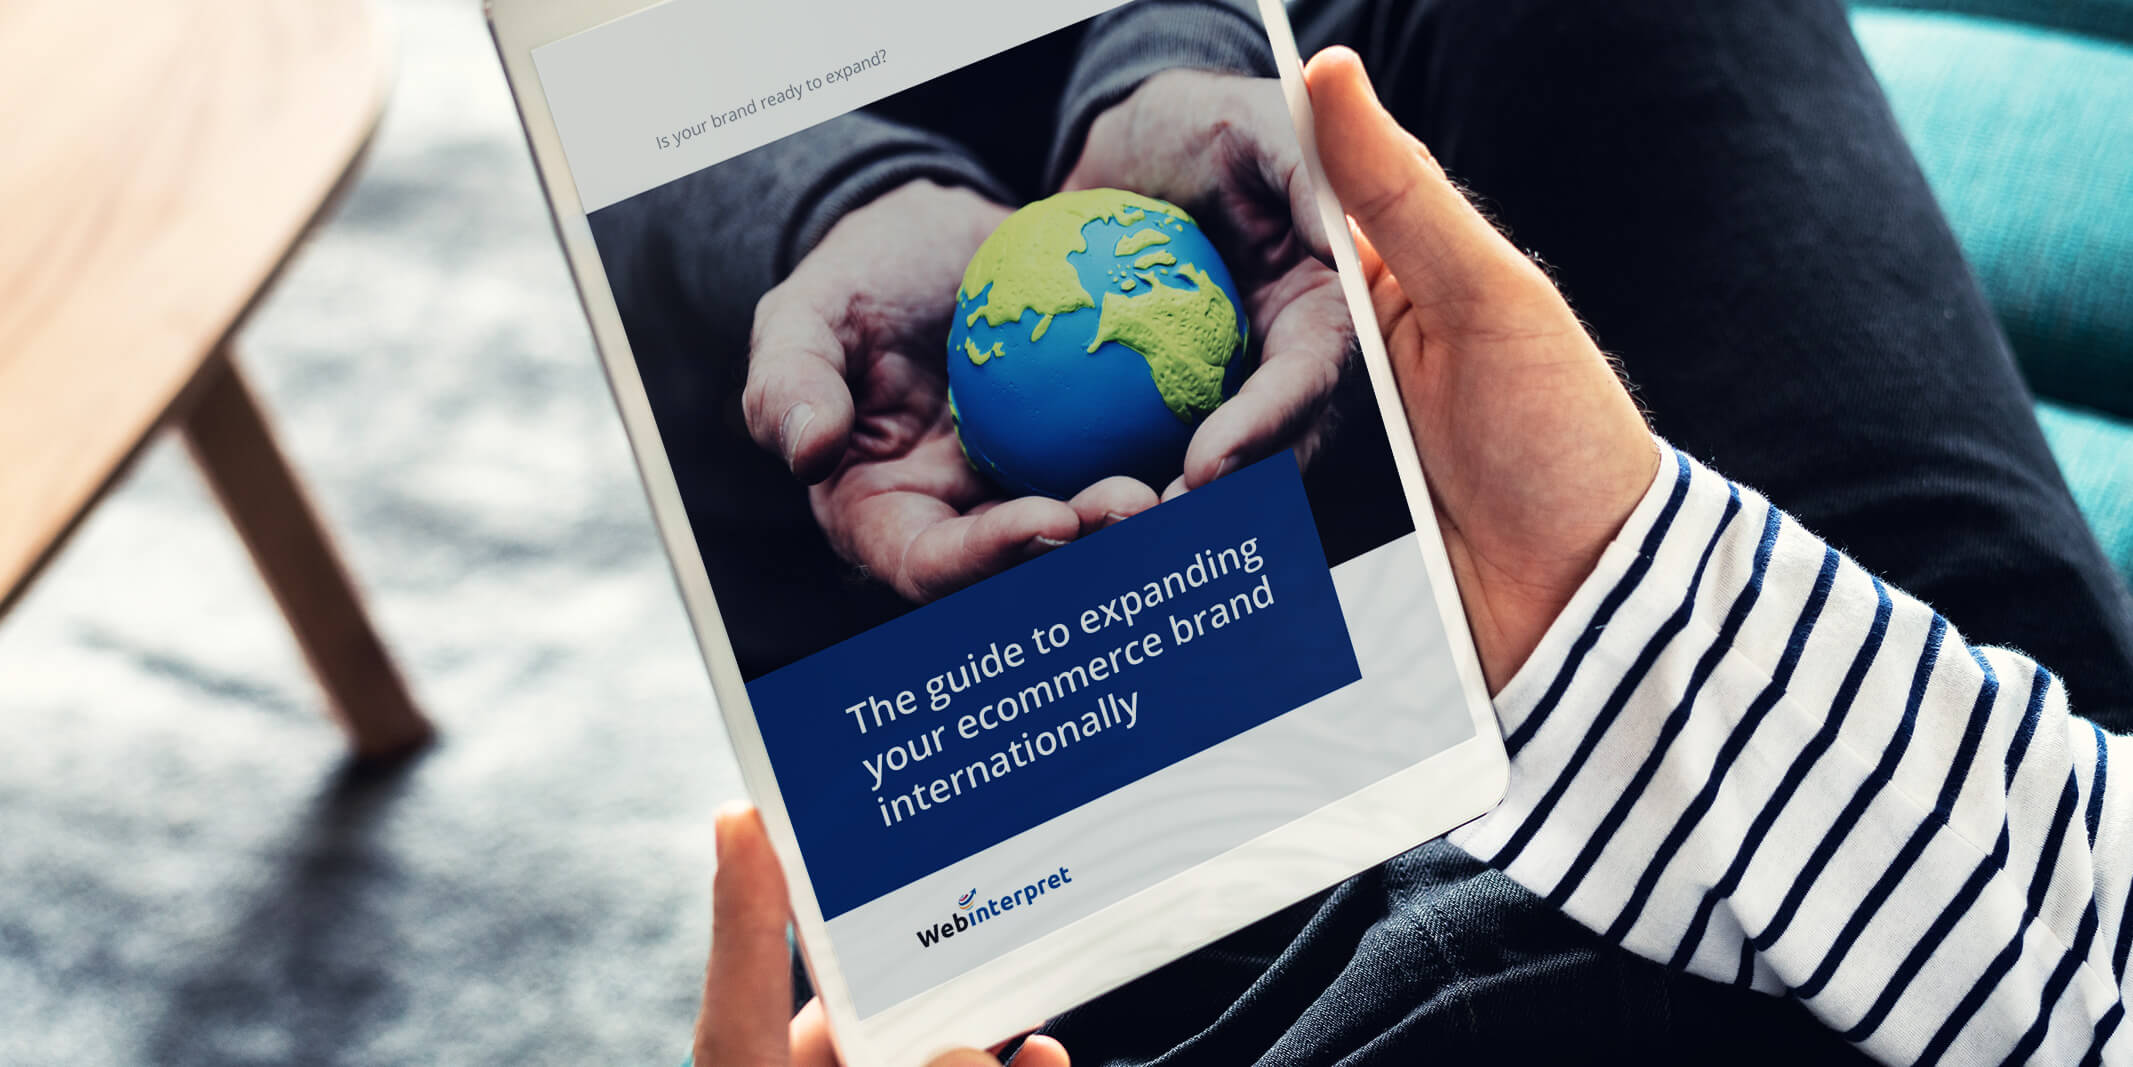 [FREE guide] Expanding your ecommerce brand internationally